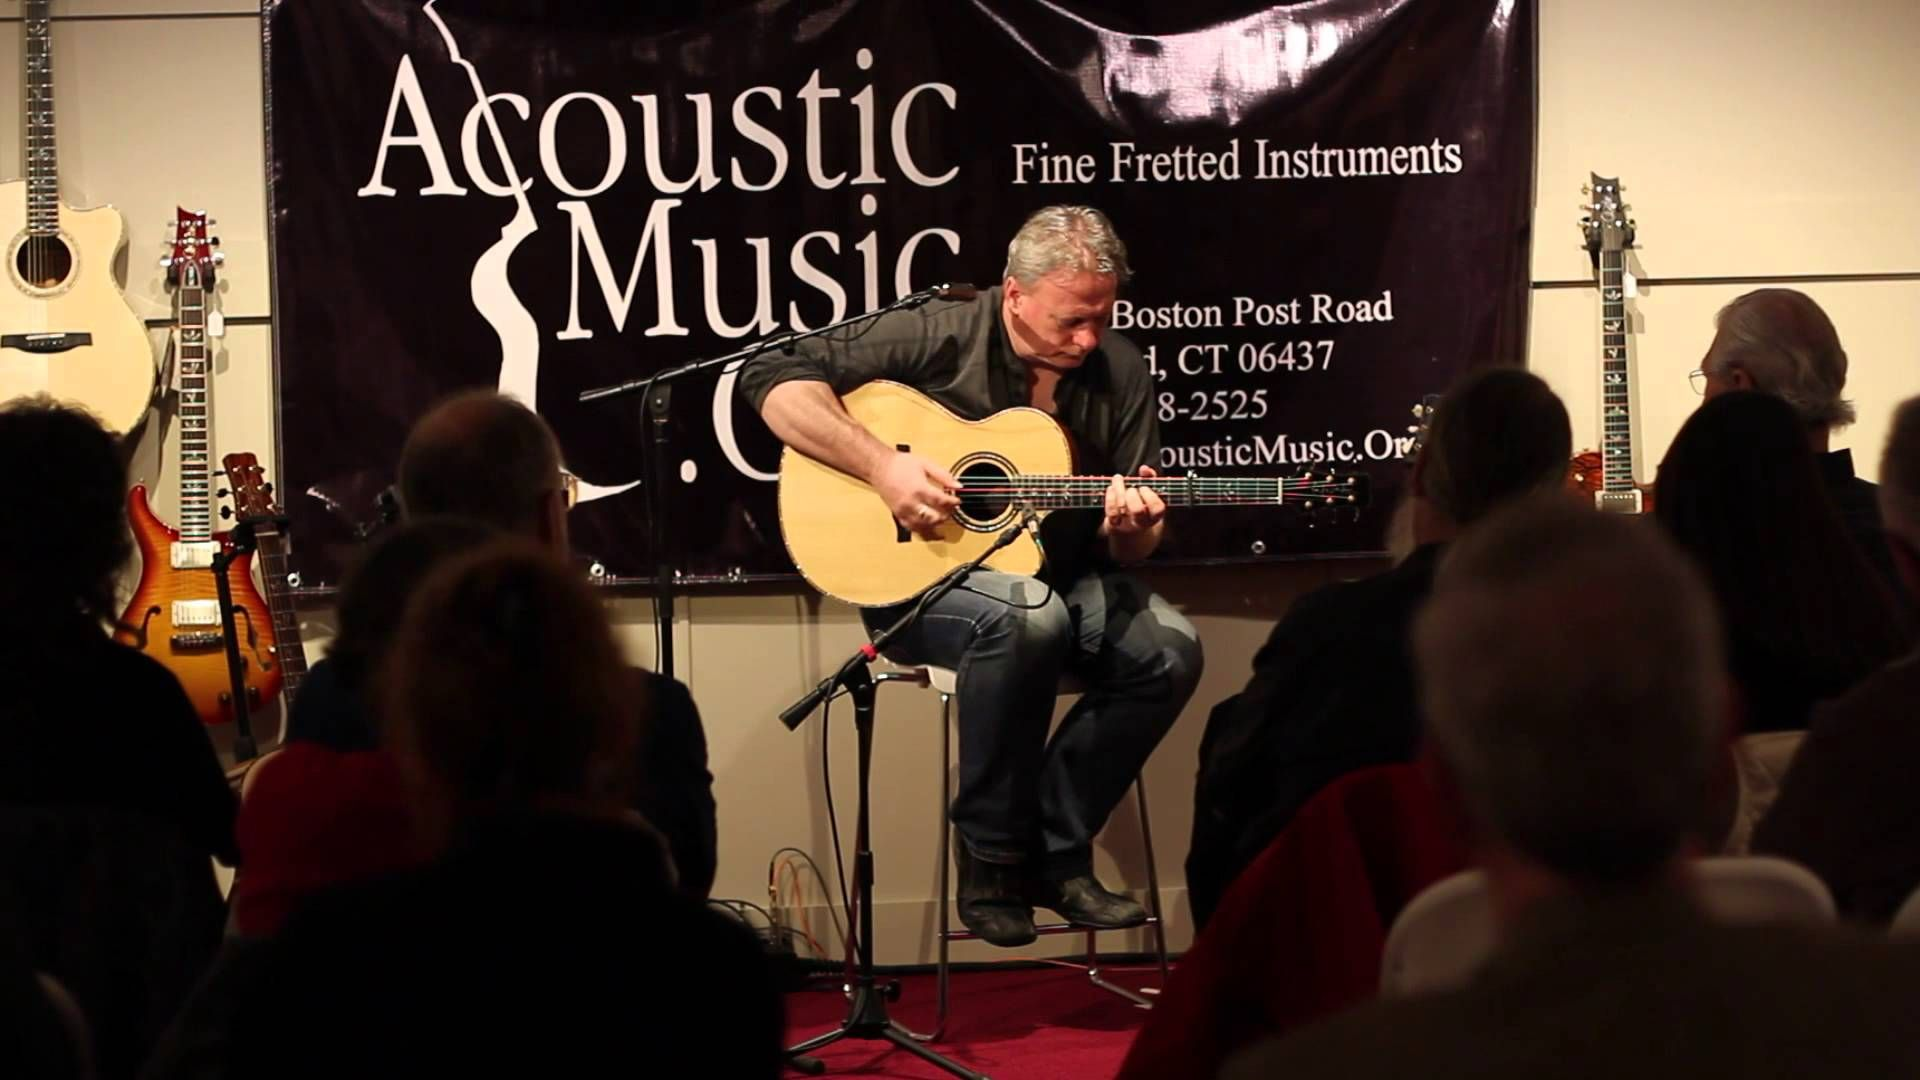 Tony McManus - Live from AcousticMusic.Org   PART 1